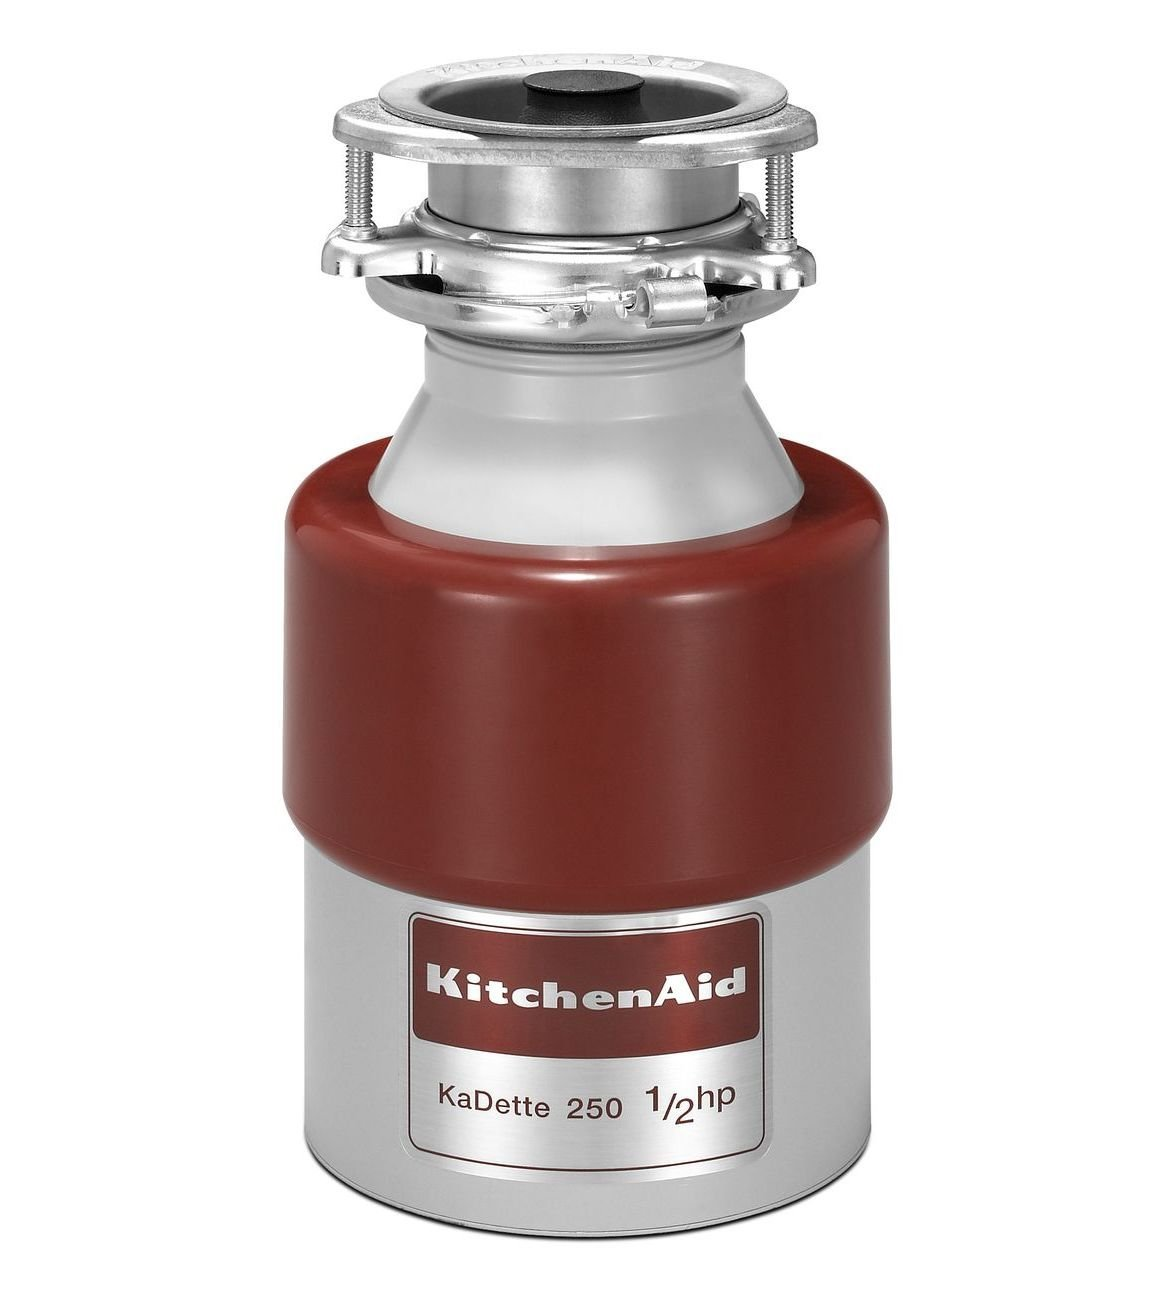 KitchenAid KCDB250G garbage disposal